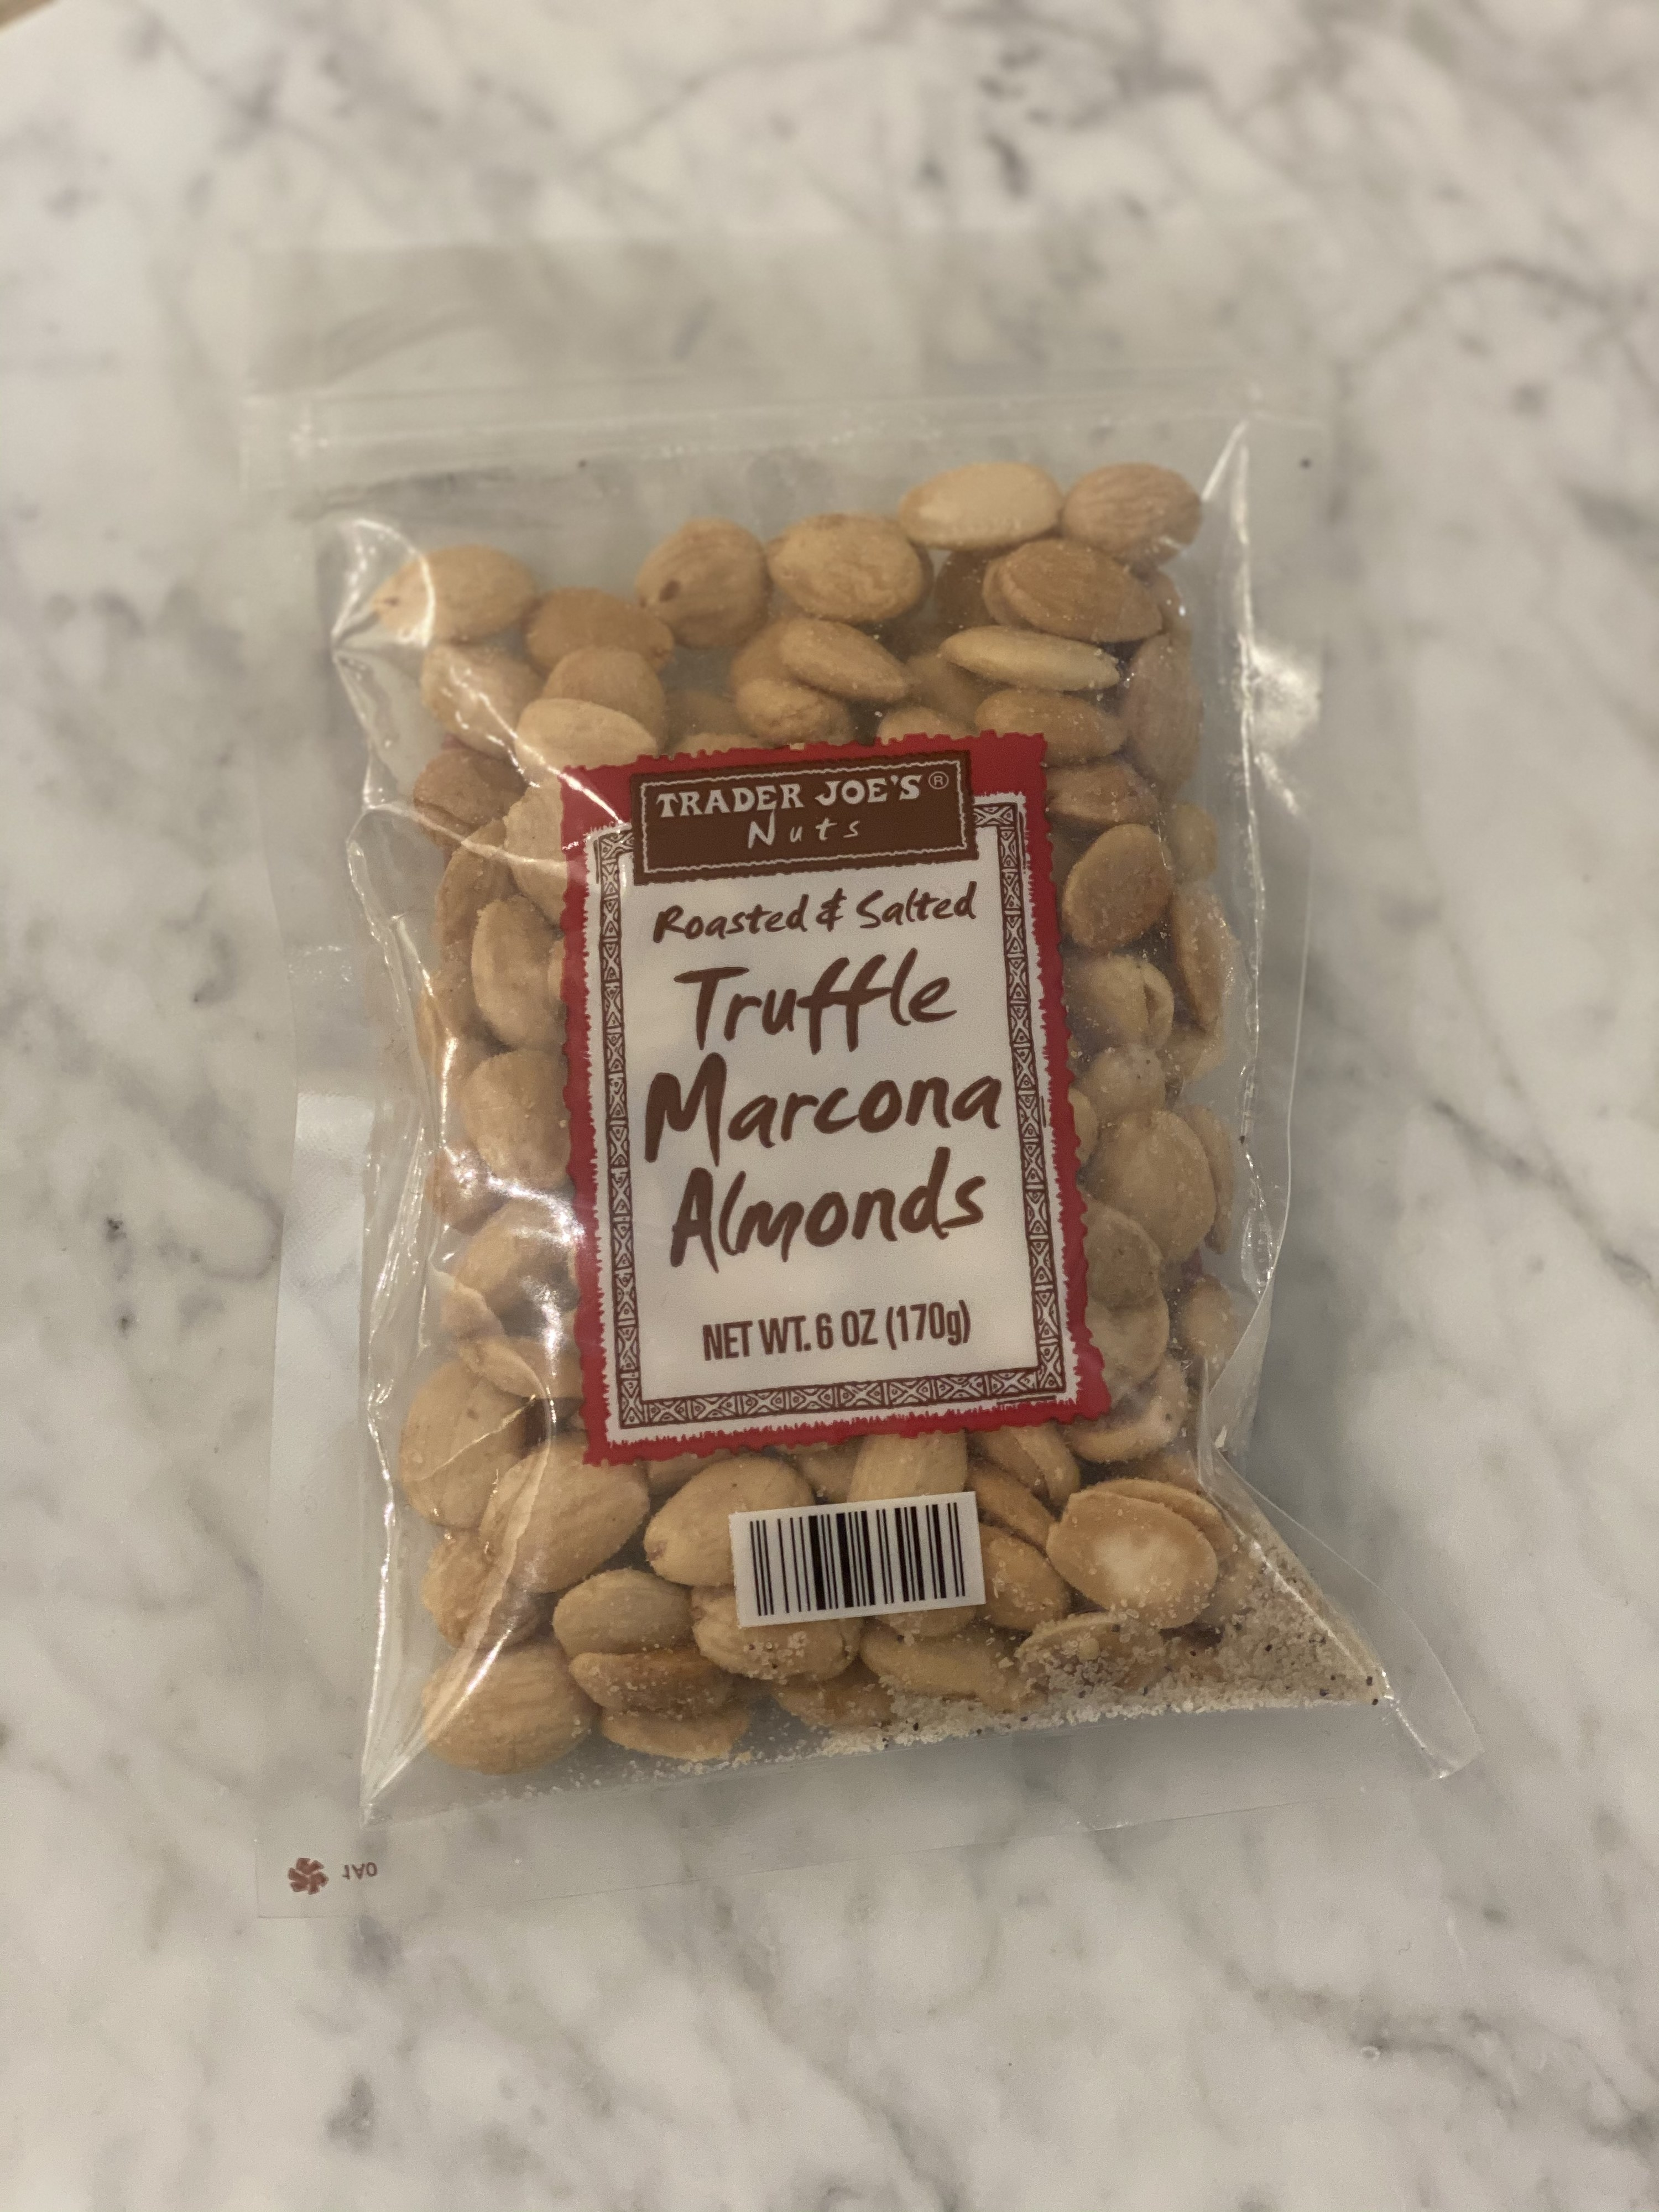 A bag of truffle marcona almonds.